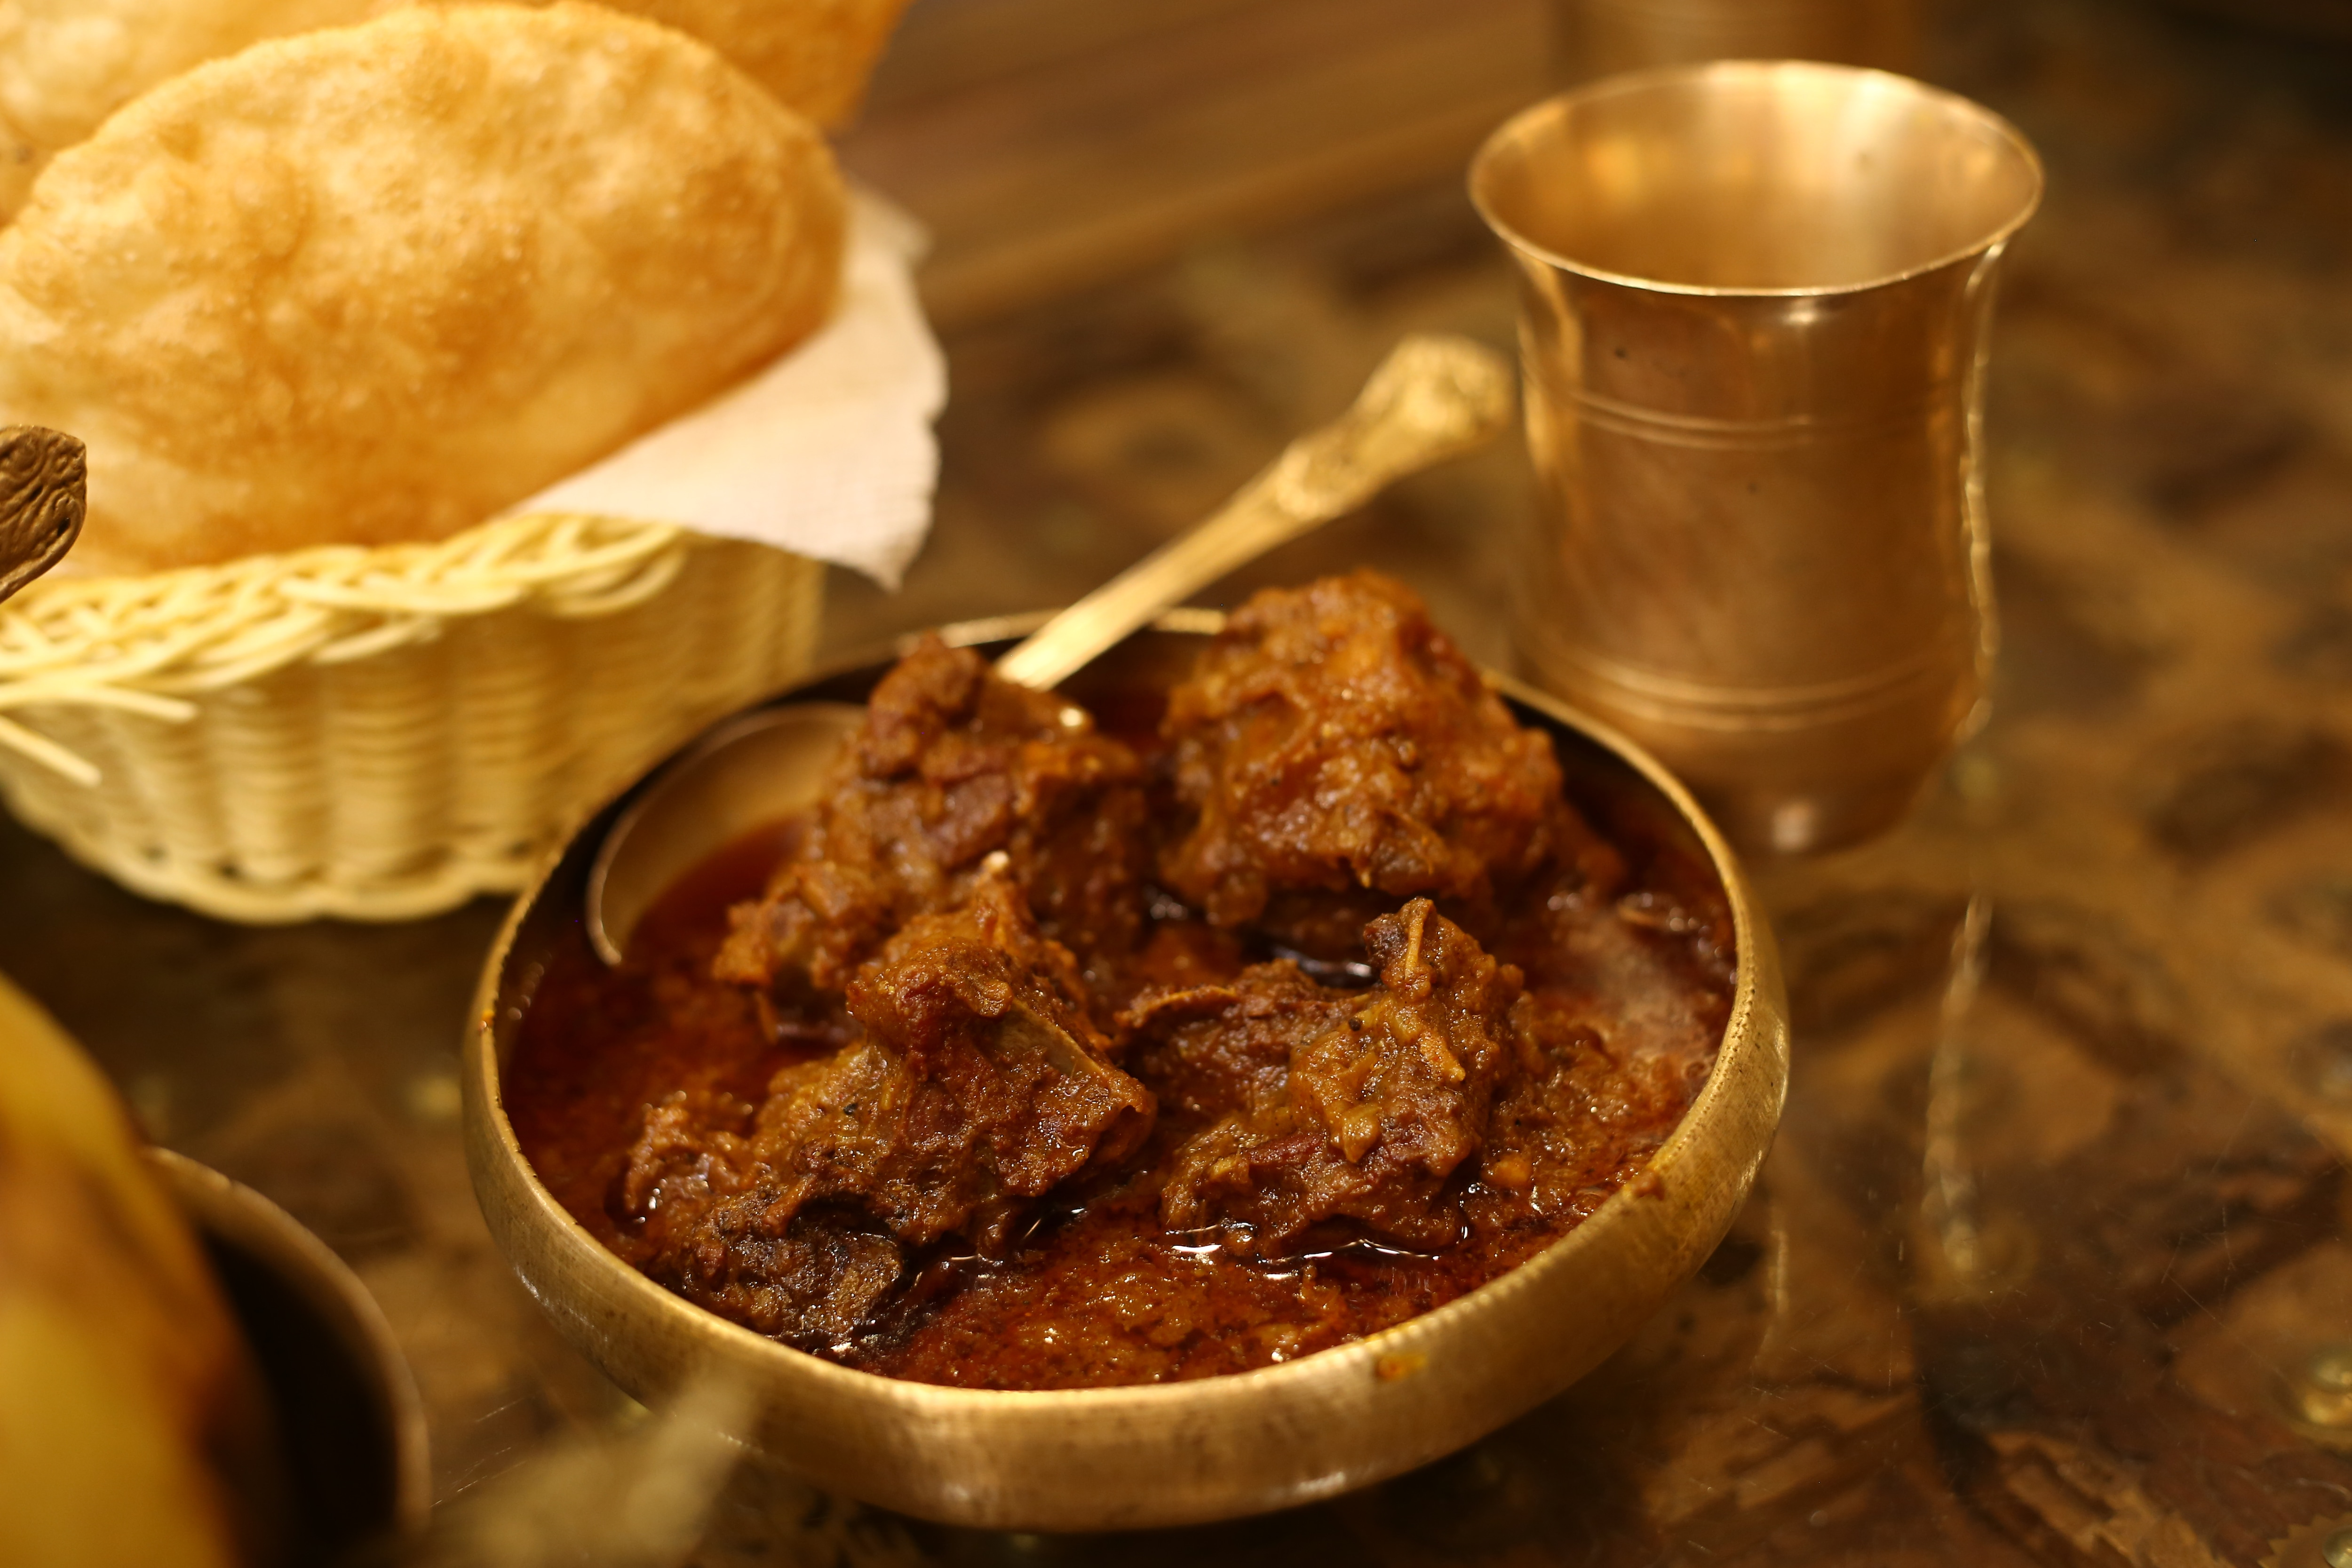 Kosha mutton is usually enjoyed with luchi and has a rich, spicy gravy.  (Photo: Rajesh Kashyap/HT)